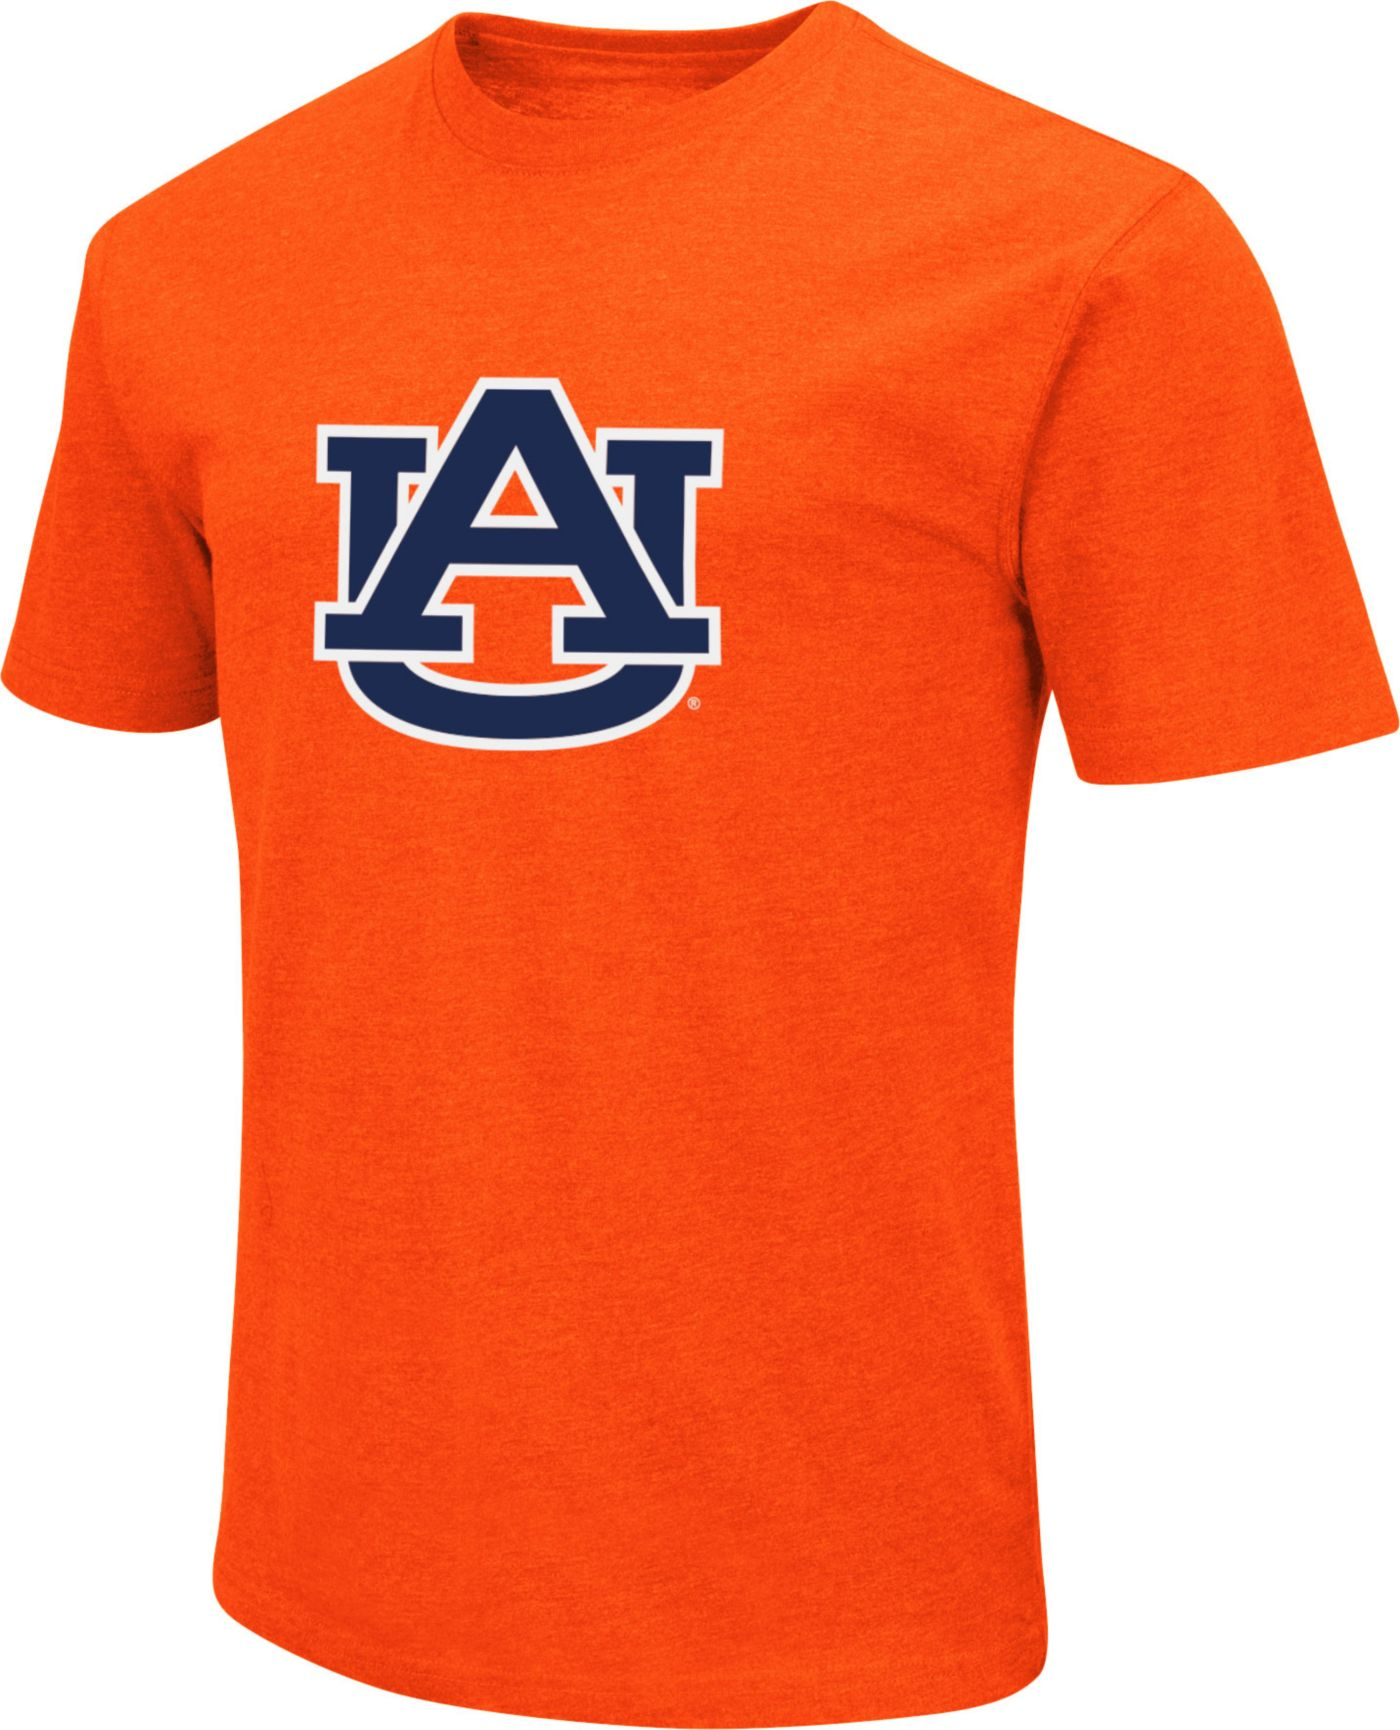 Colosseum Men's Auburn Tigers Orange Dual Blend T-Shirt